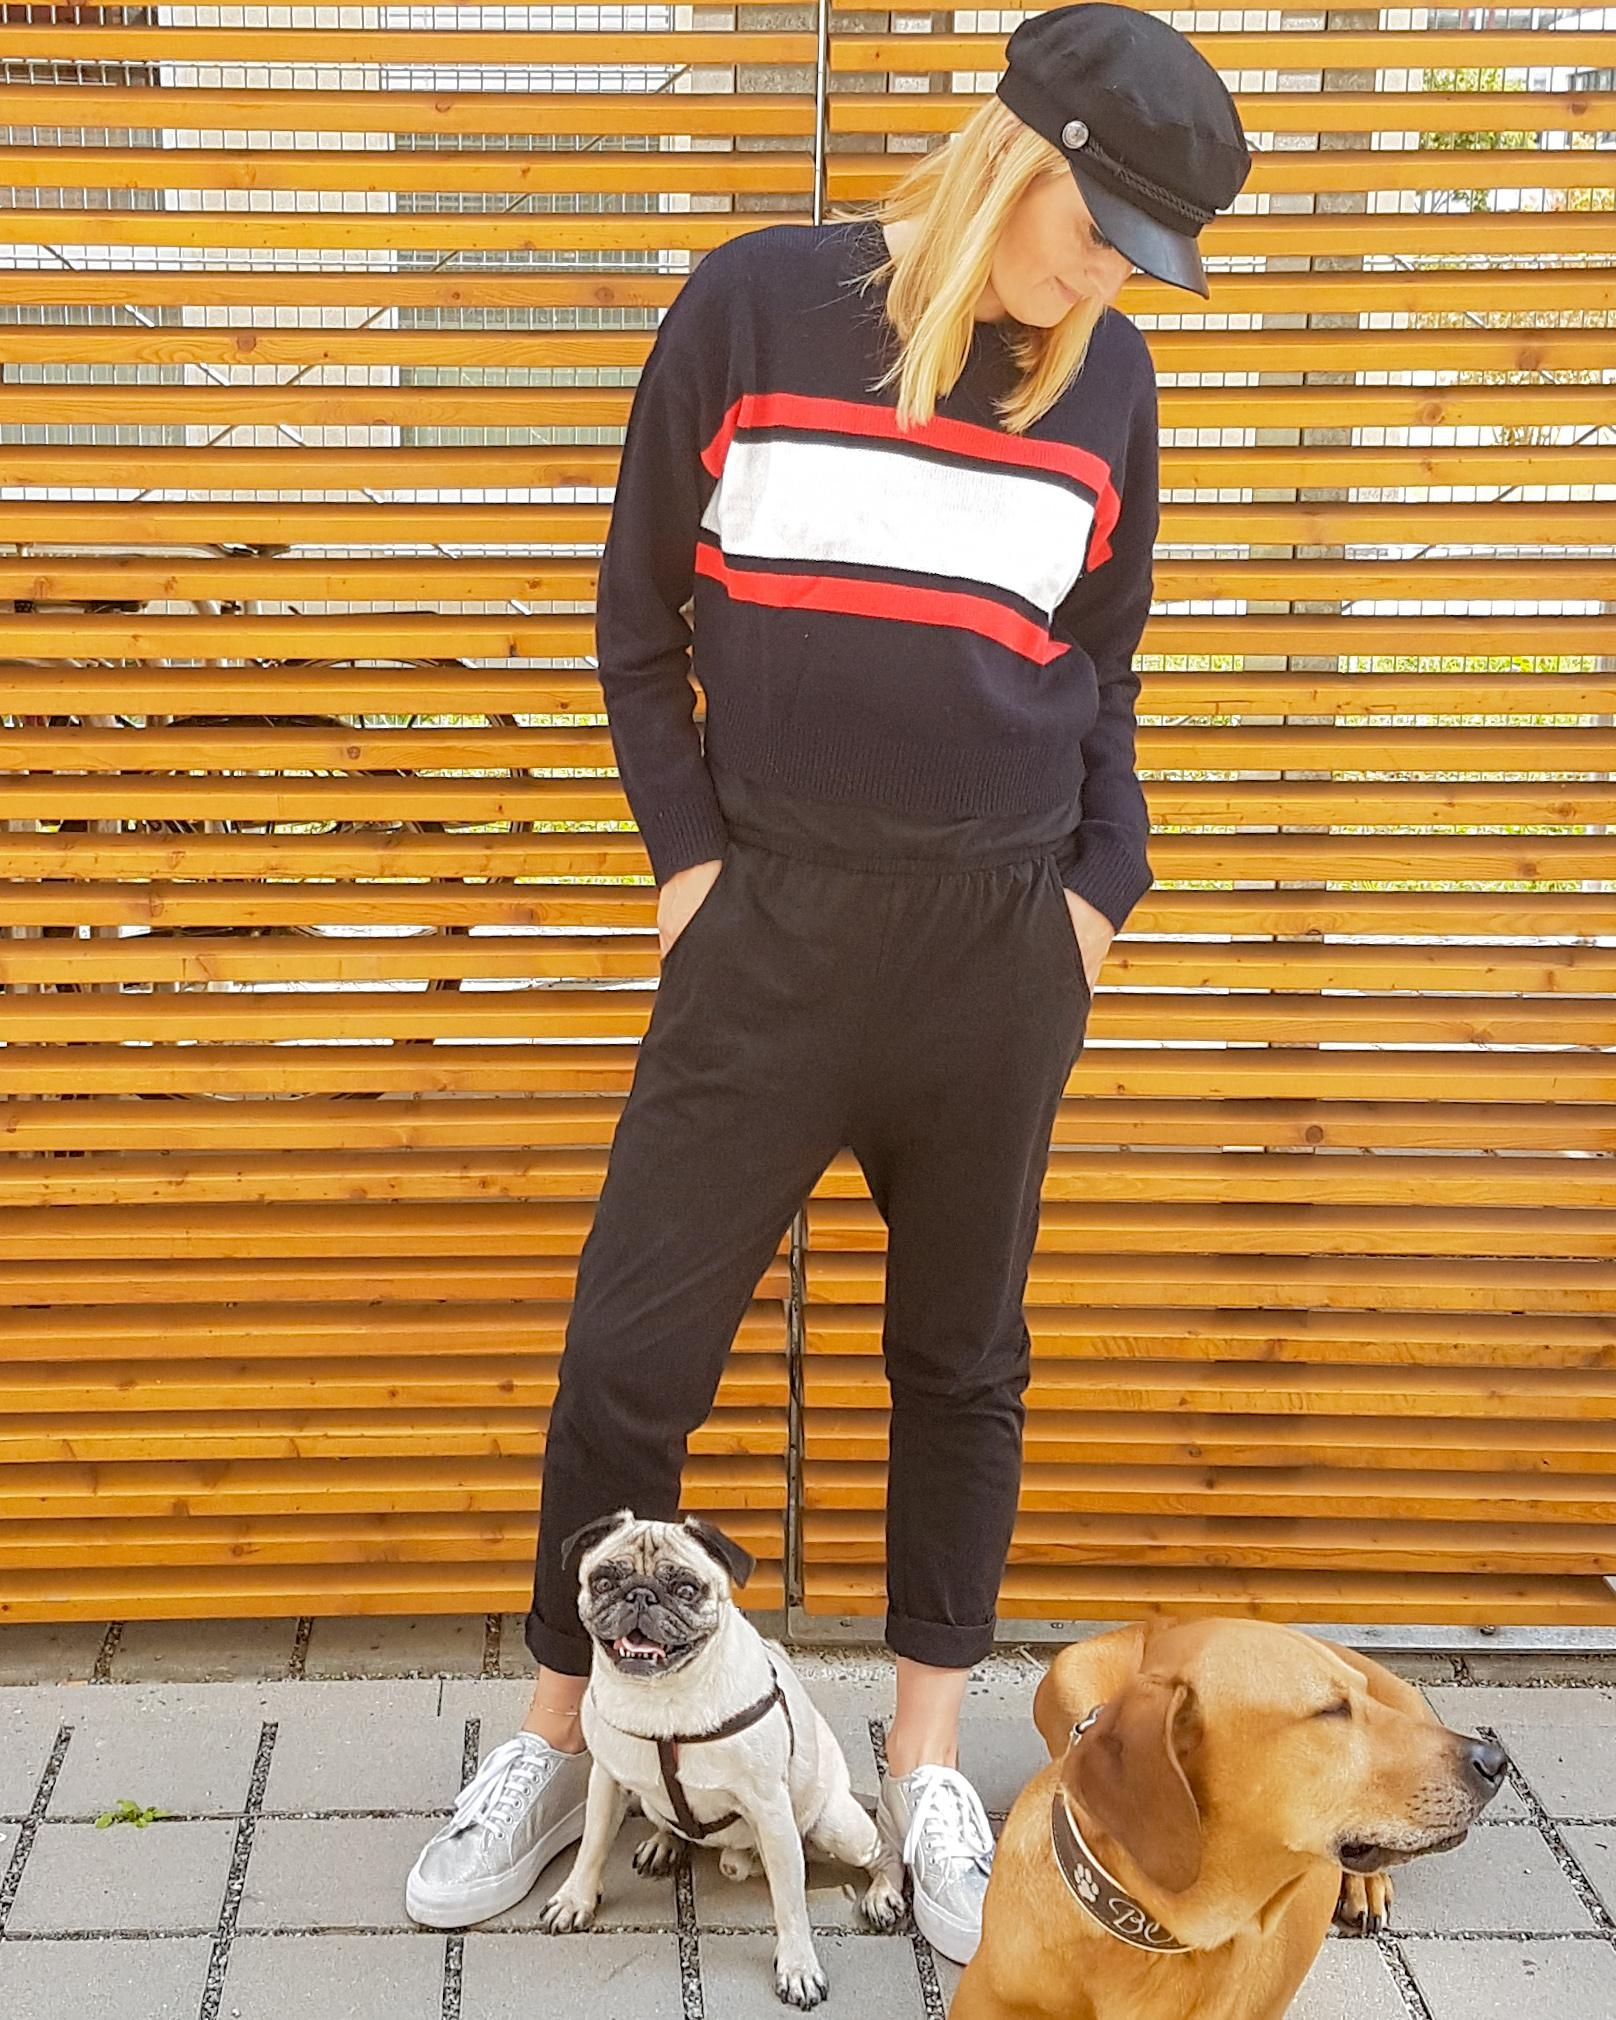 #fashion #sundaymood #dogs #berlin